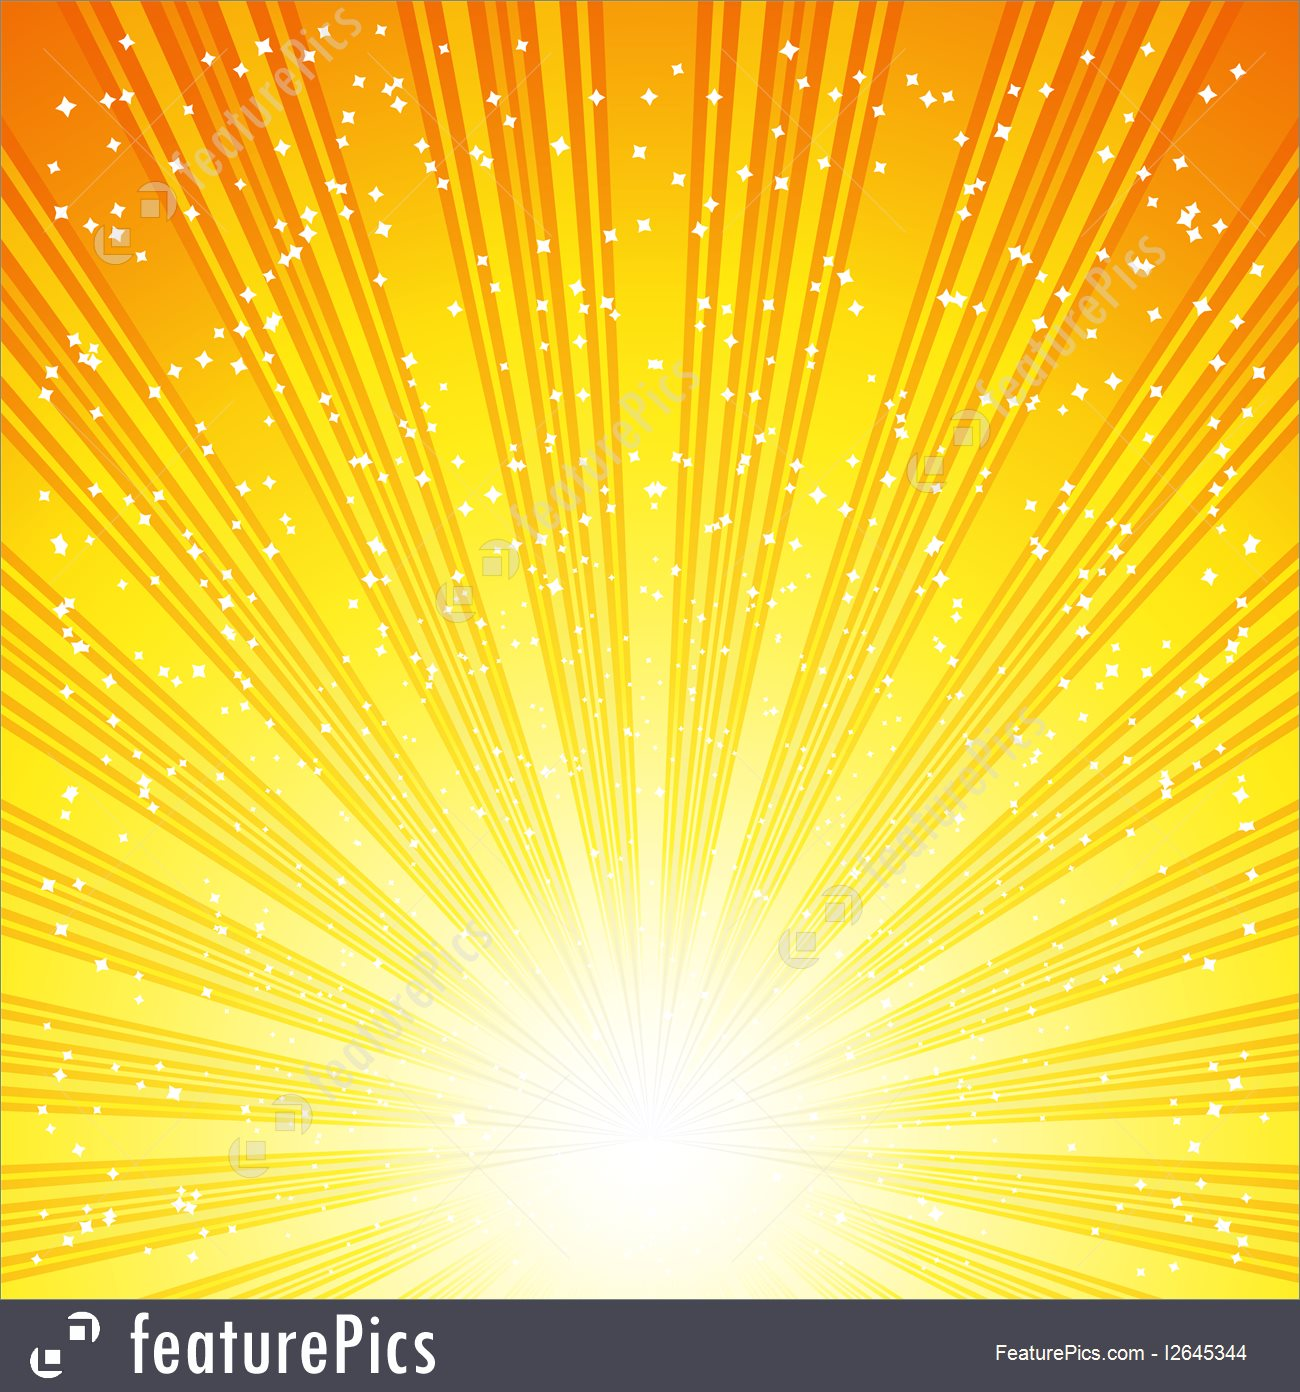 1300x1392 Abstract Patterns Solar Abstract Vector Background With Rays And